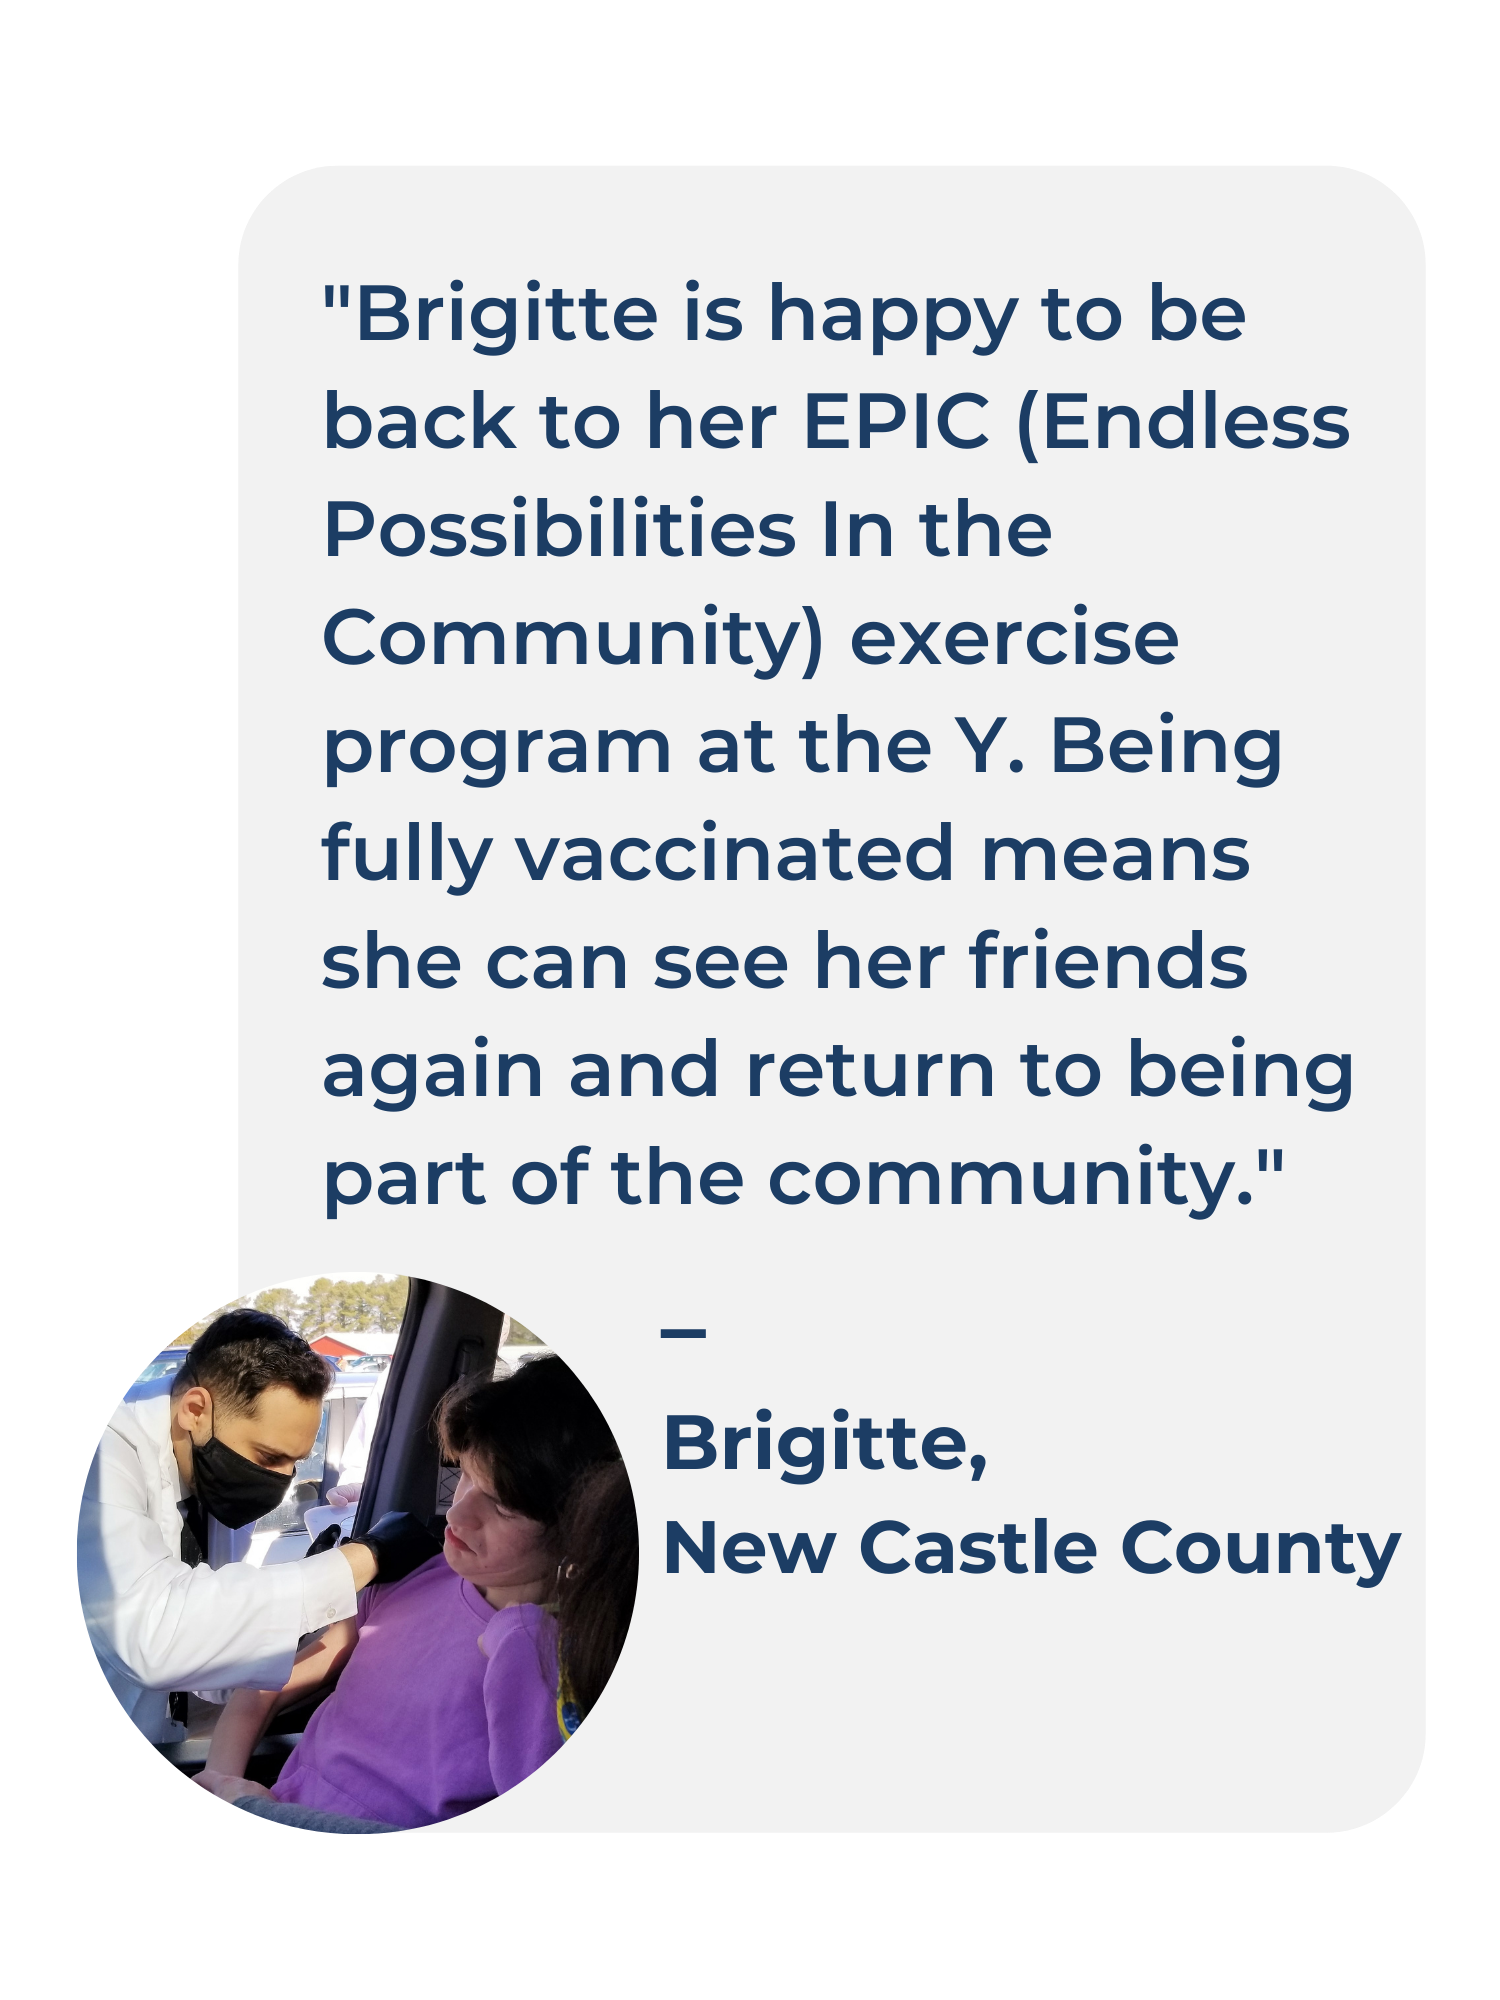 """graphic treatment of a written testimonial from Brigitte of New Castle County, Delaware. Testimonial reads: """"Brigitte is happy to be back to her EPIC (Endless Possibilities In the Community) exercise program at the Y. Being fully vaccinated means she can see her friends again and return to being part of the community. Brigitte, Newark"""""""